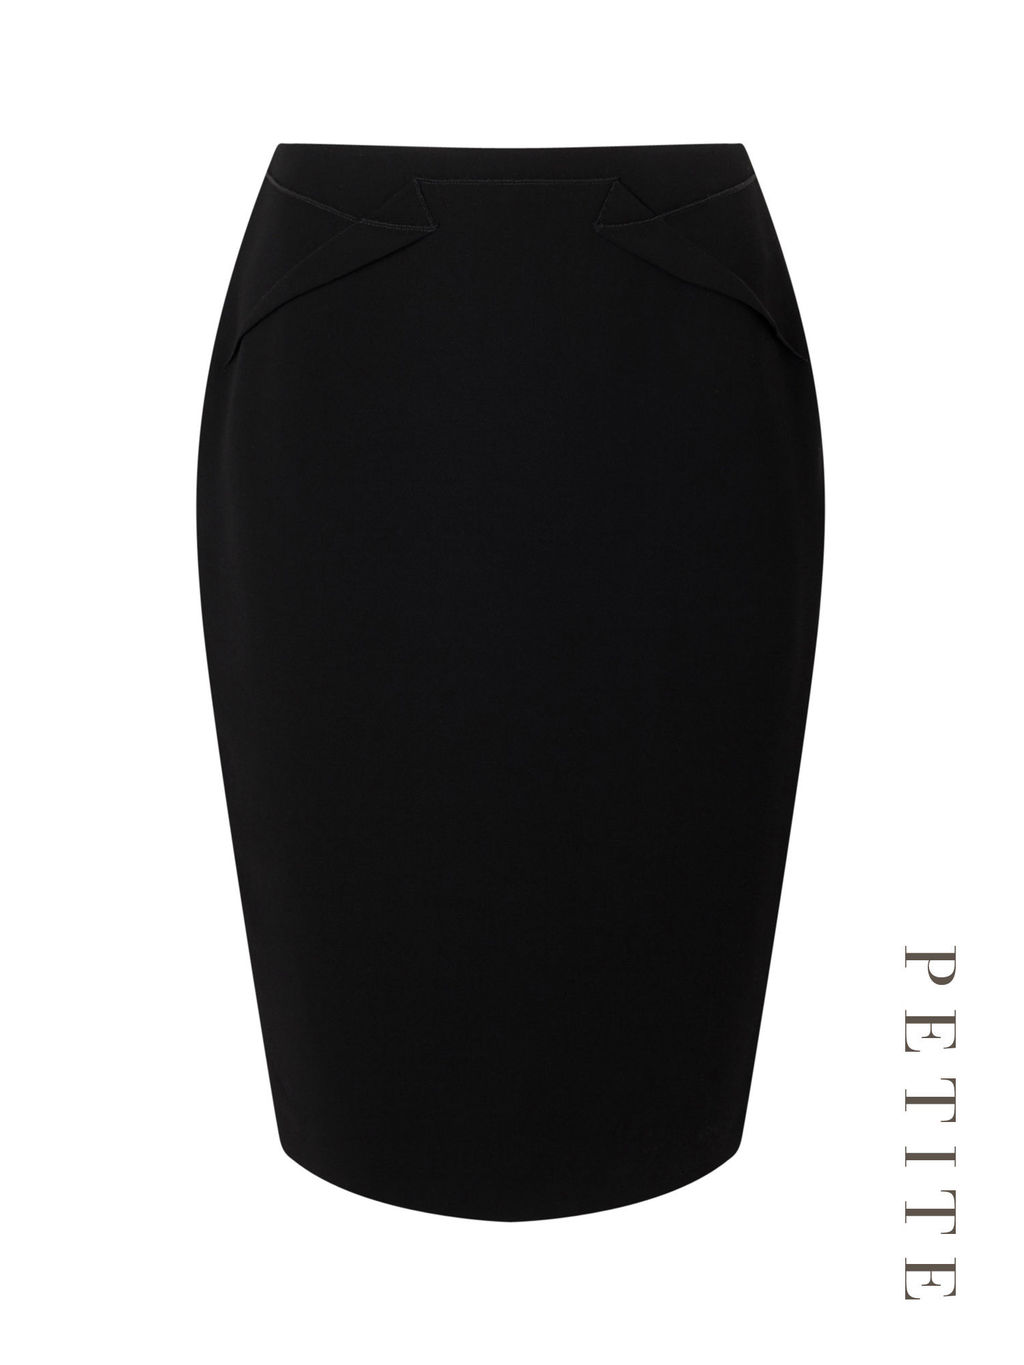 Petite Pencil Skirt - pattern: plain; style: pencil; fit: tailored/fitted; waist: mid/regular rise; predominant colour: black; occasions: work; length: just above the knee; fibres: polyester/polyamide - 100%; pattern type: fabric; texture group: other - light to midweight; season: s/s 2016